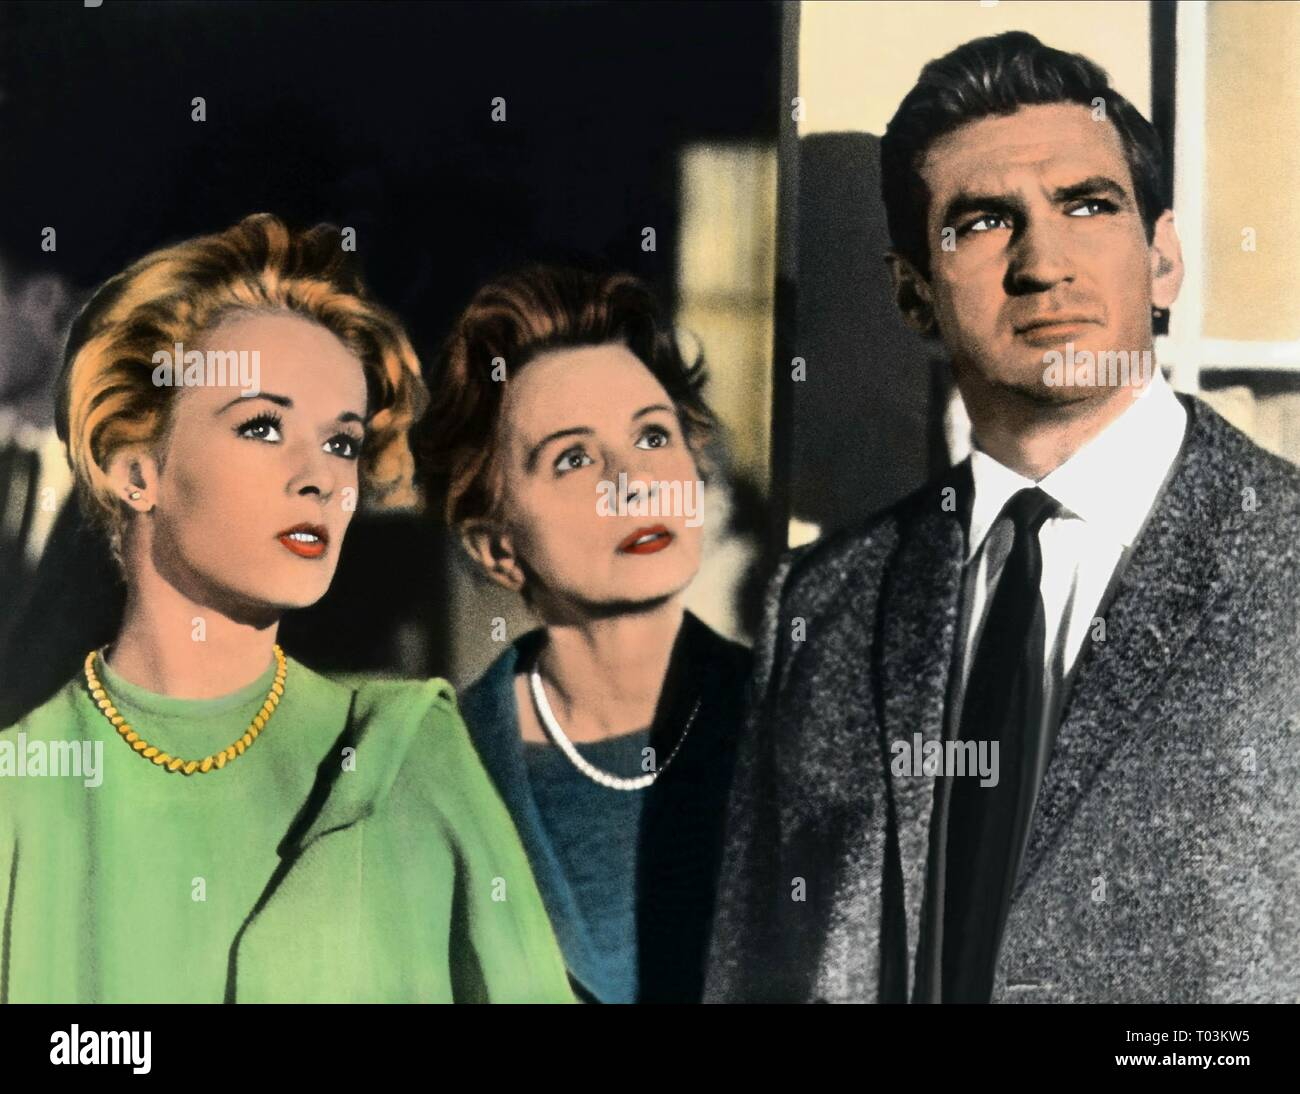 TIPPI HEDREN, JESSICA TANDY, ROD TAYLOR, THE BIRDS, 1963 - Stock Image